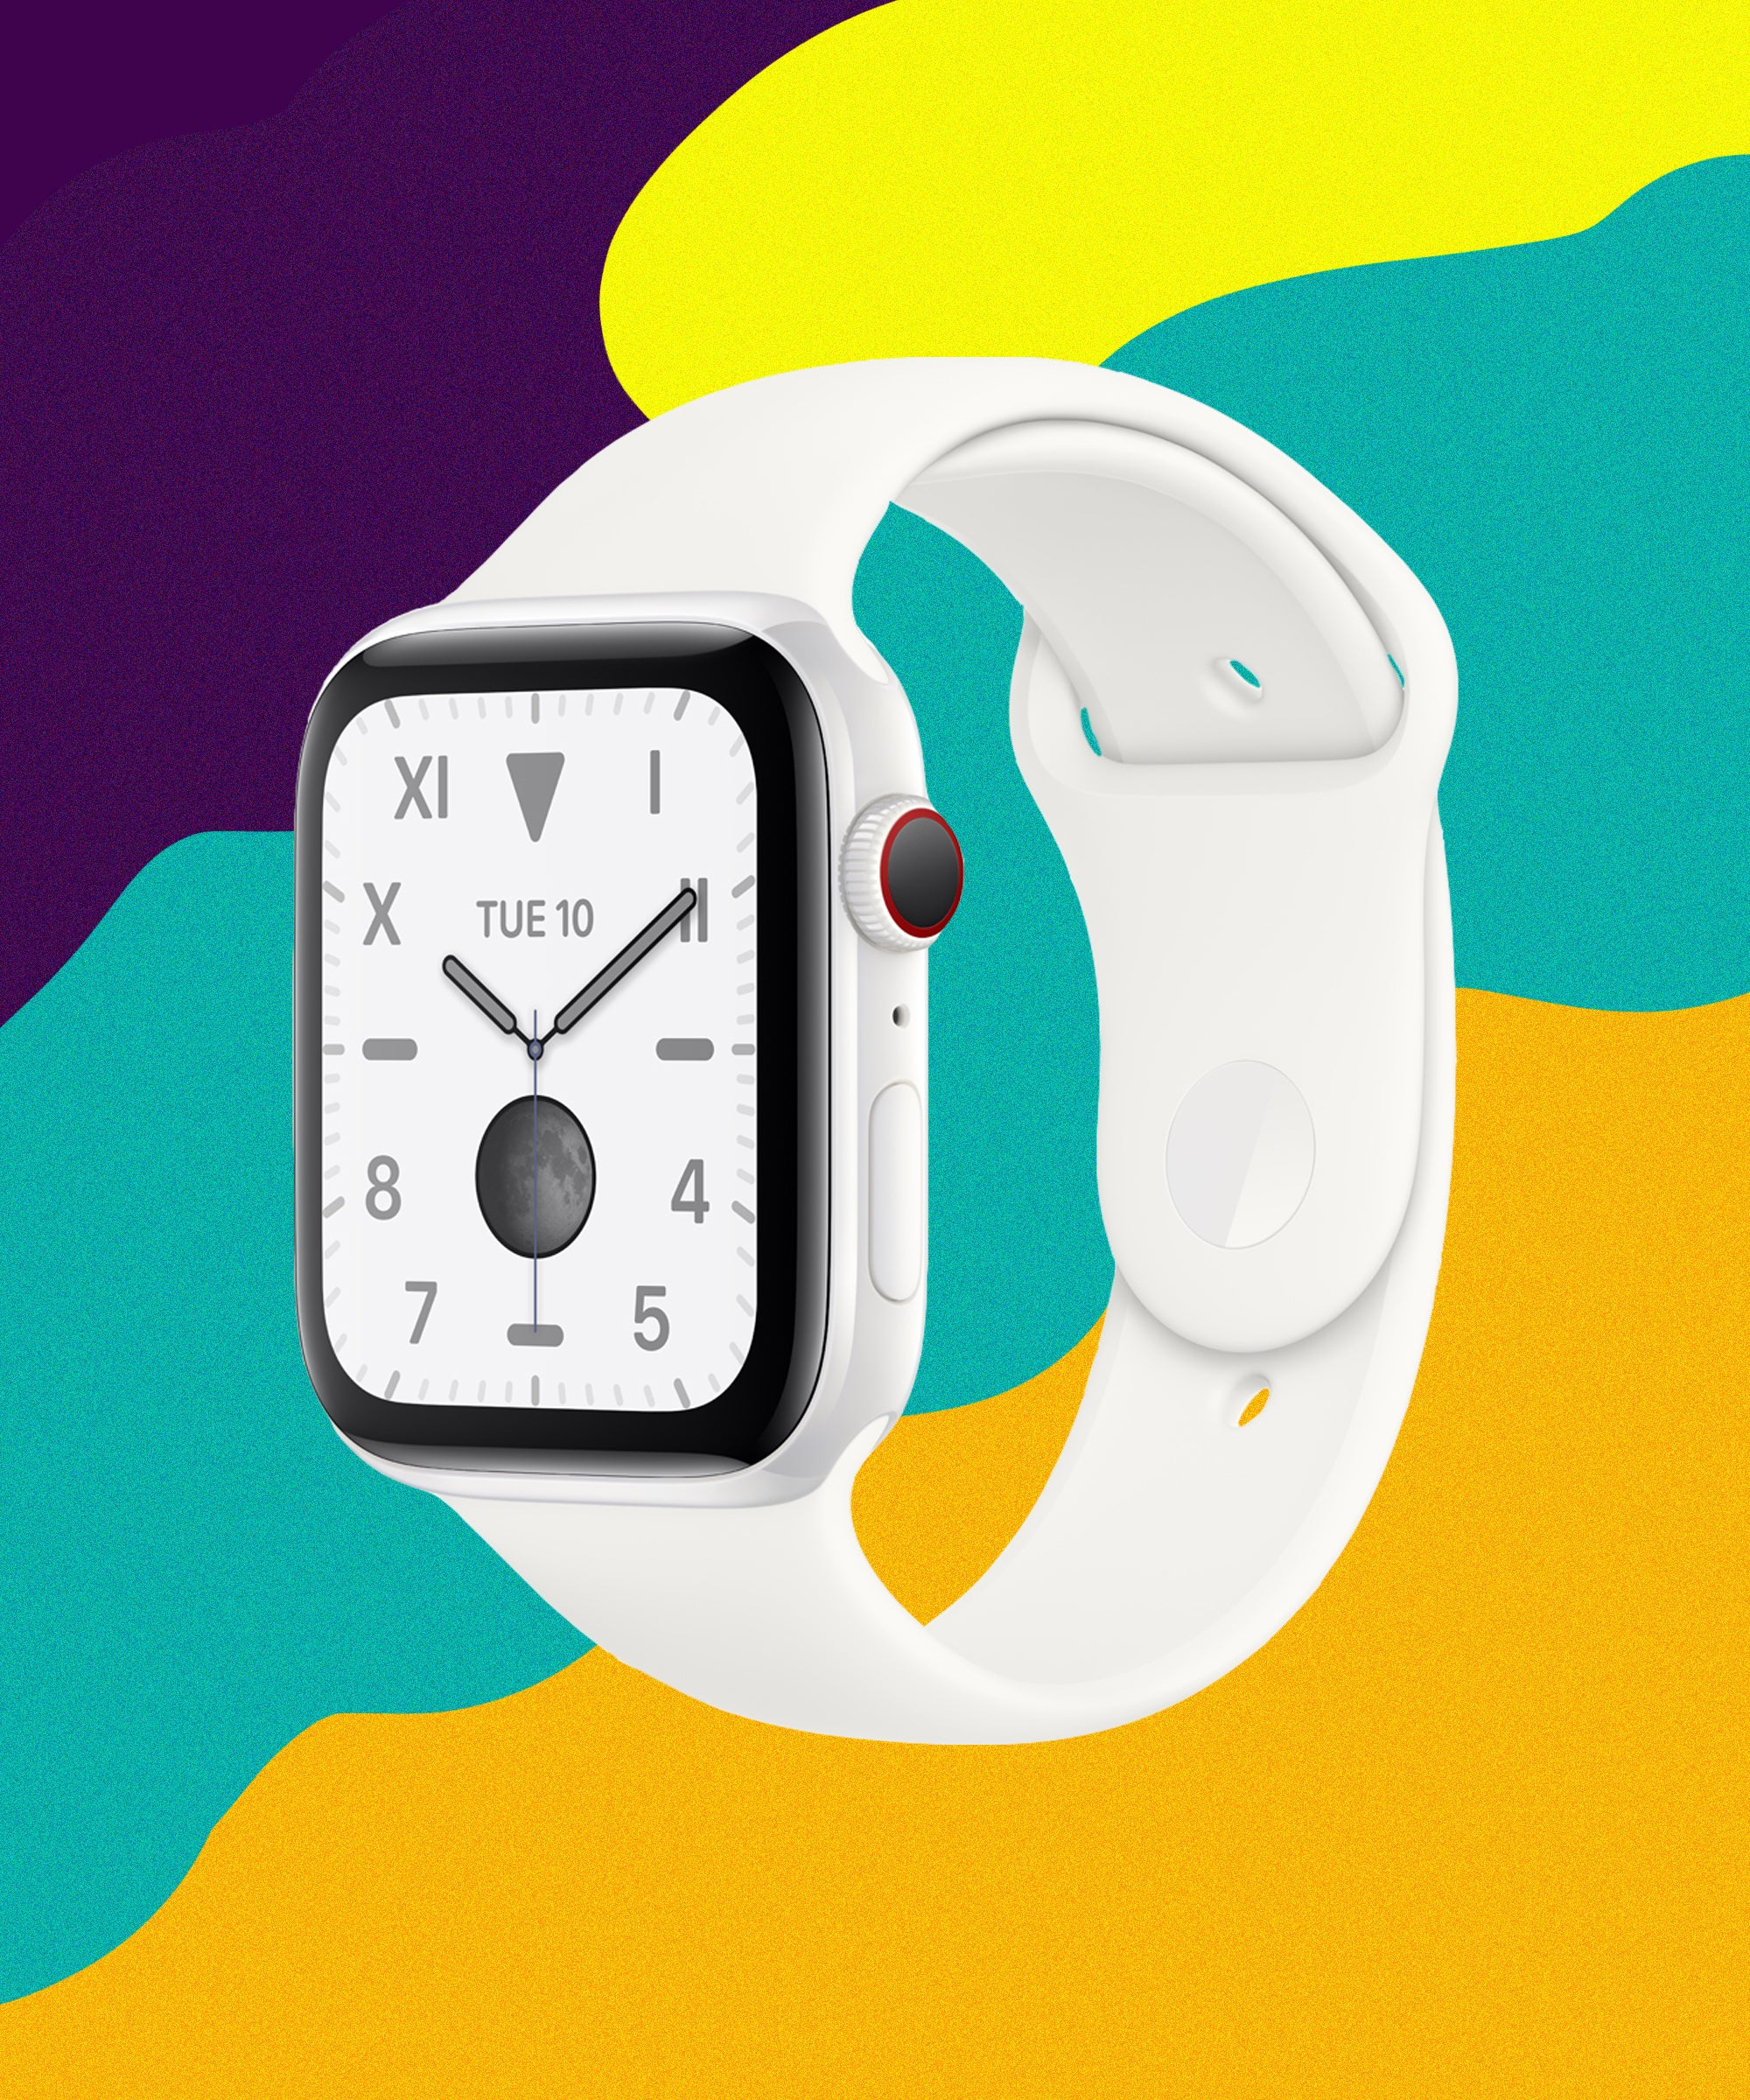 The New Apple Watch Series 5 Is The Ultimate Fashion Statement